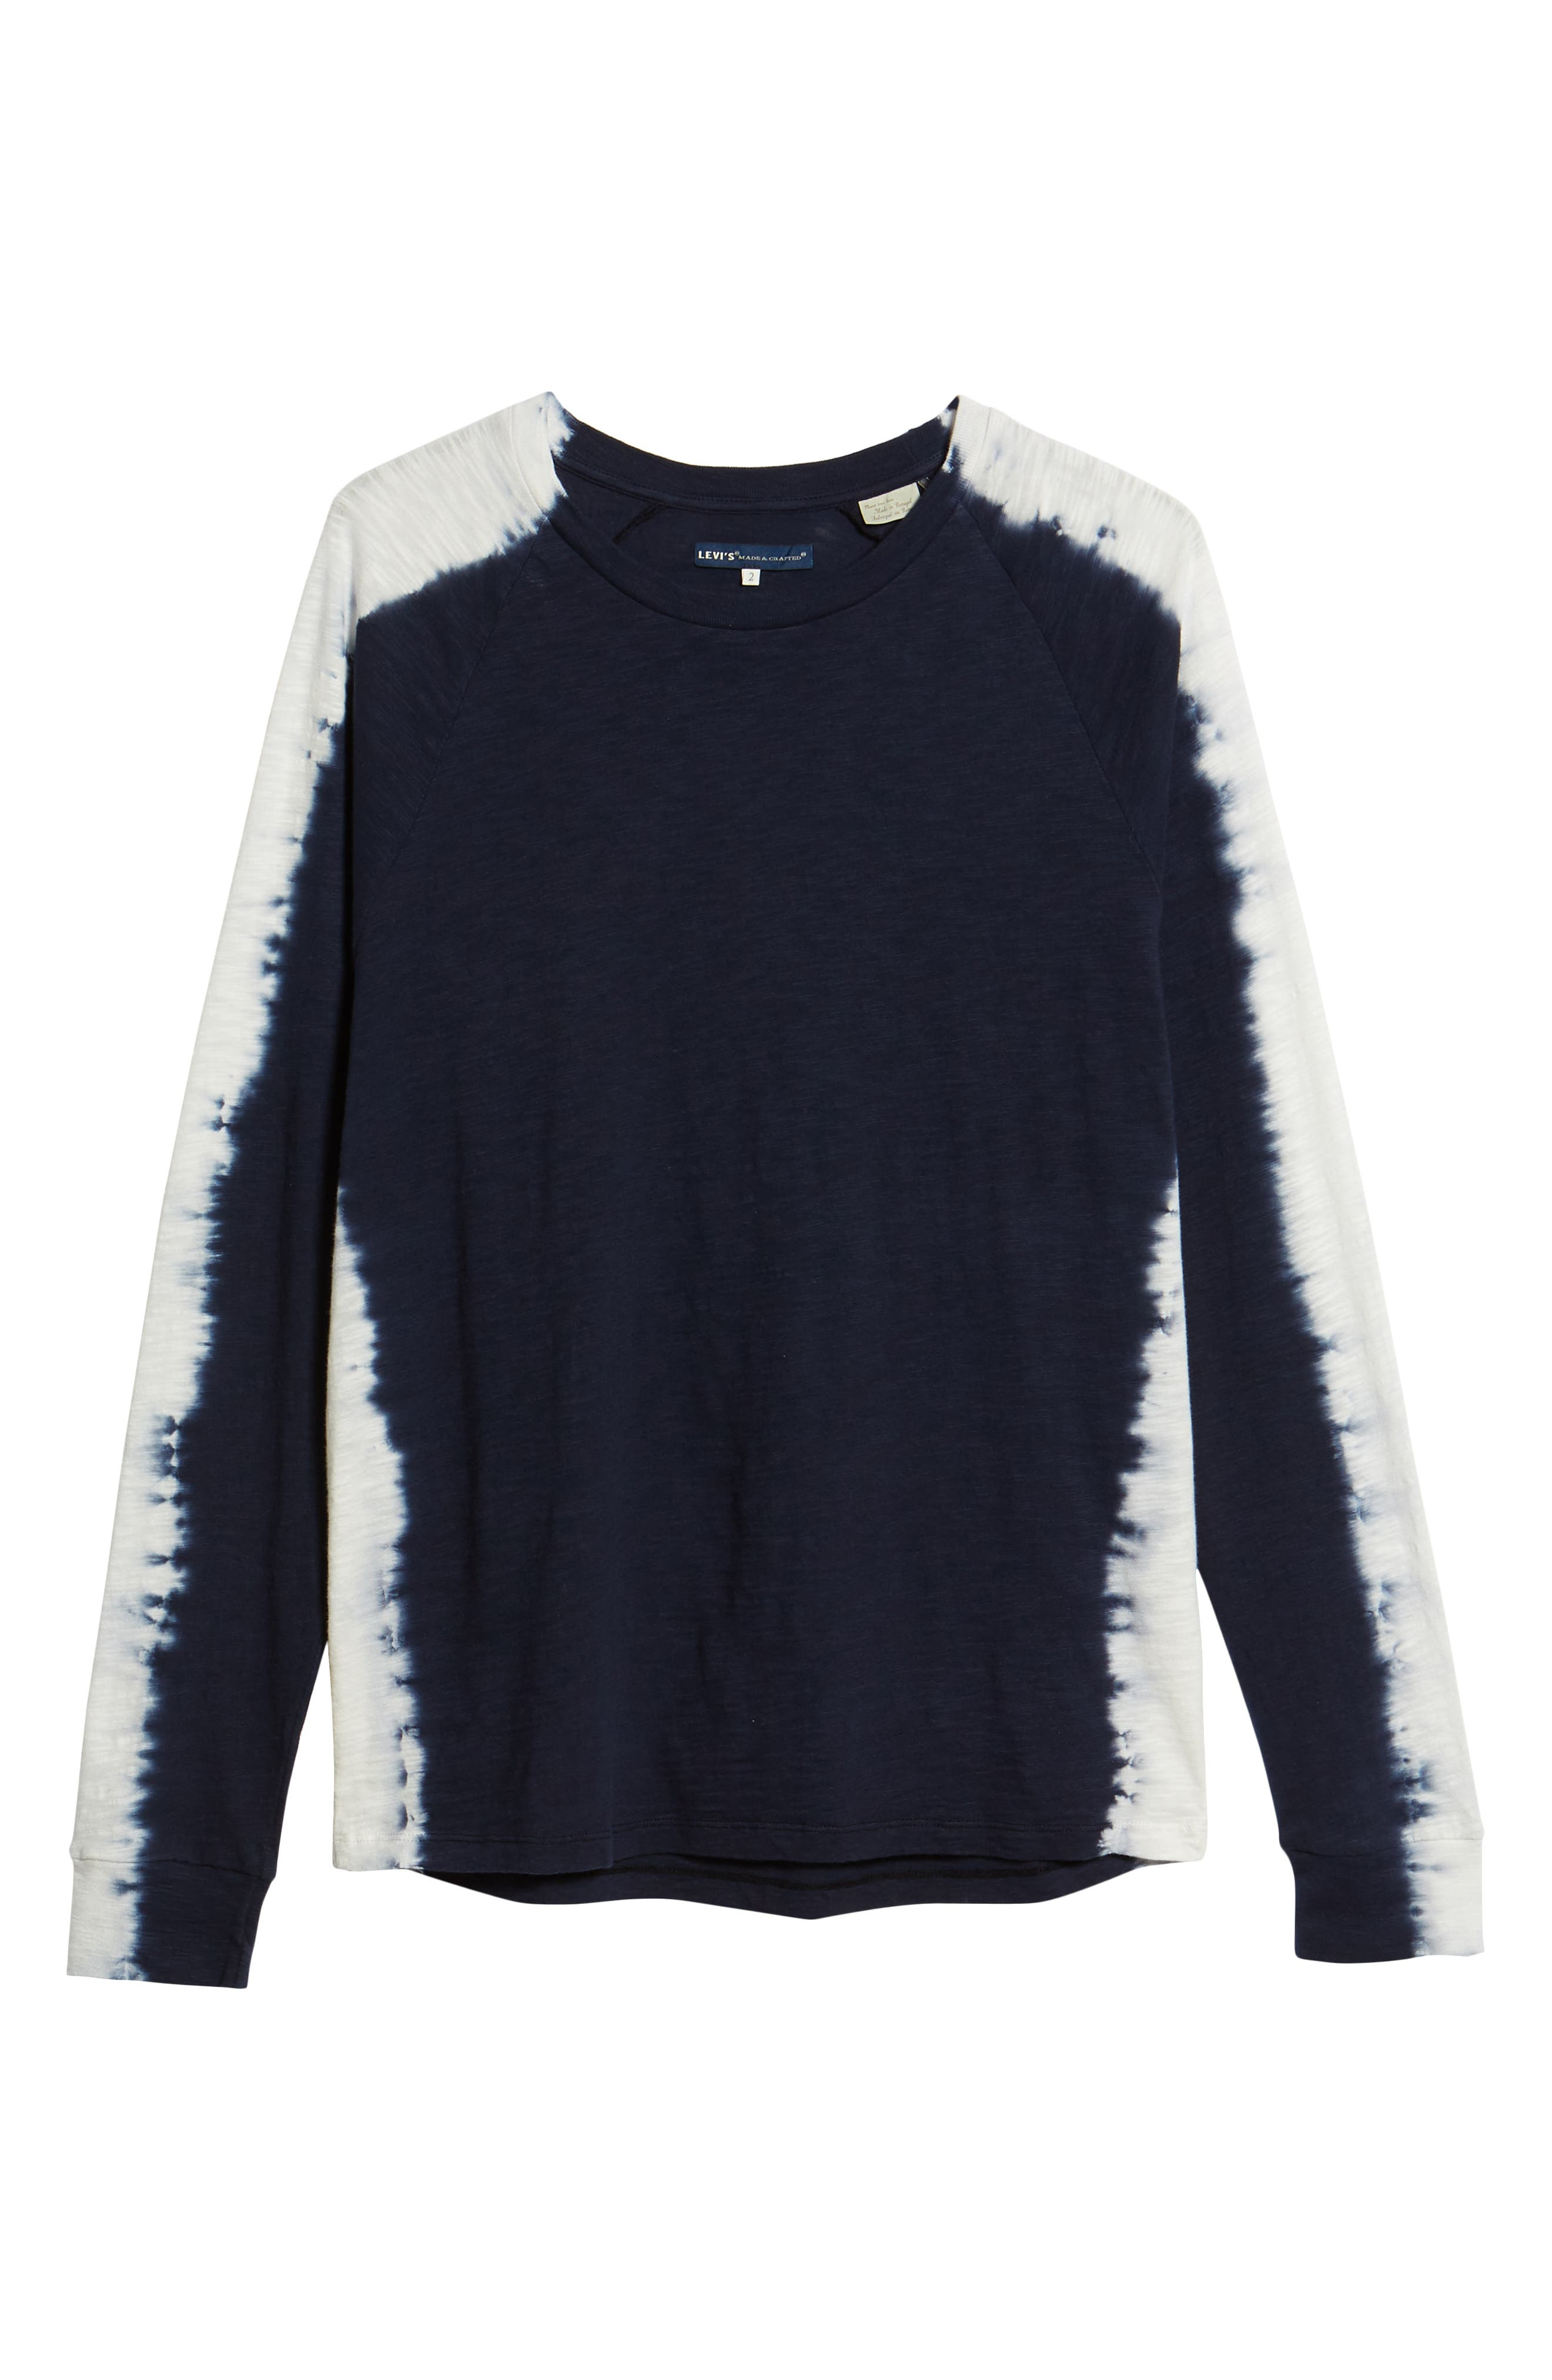 Raglan T-Shirt,                             Alternate thumbnail 6, color,                             INDIGO STRIPE SHIBORI INDIGO